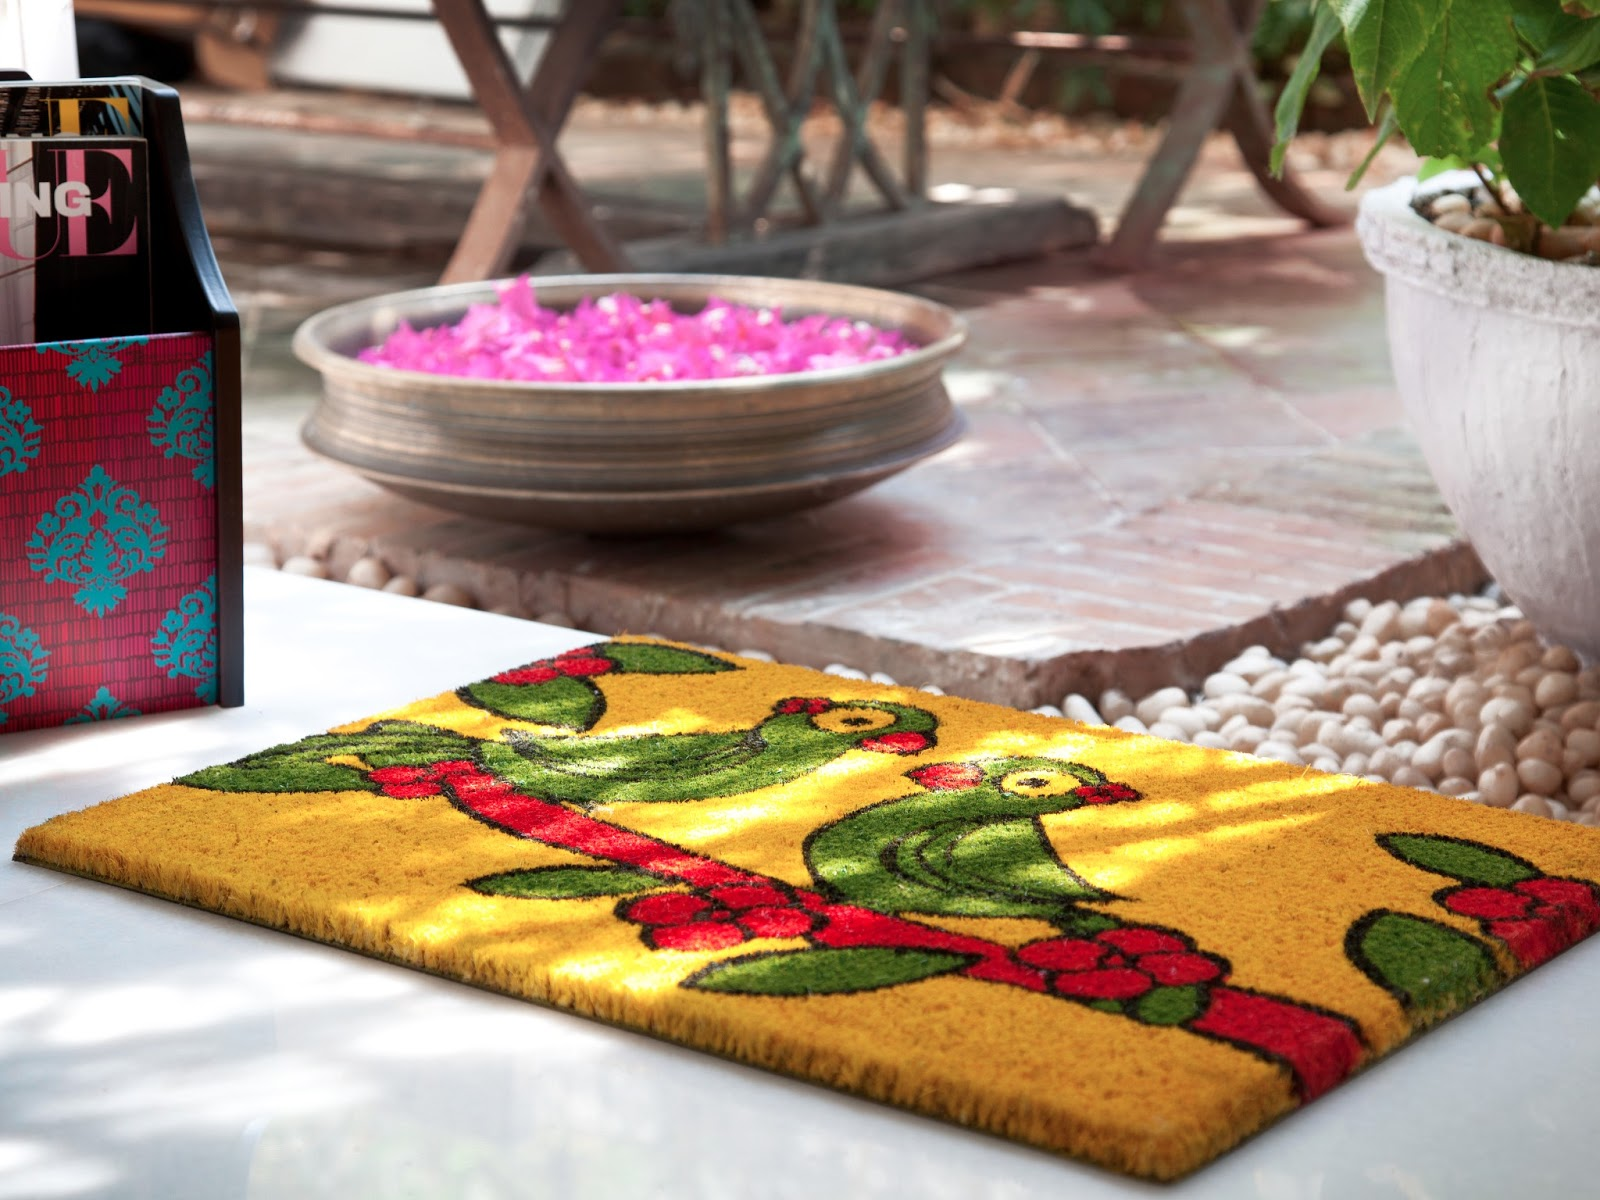 webstore spotlight india circus magali vaz fashion fell in love with the colorful well designed products they have everything from home decor dining furniture accessories stationery etc